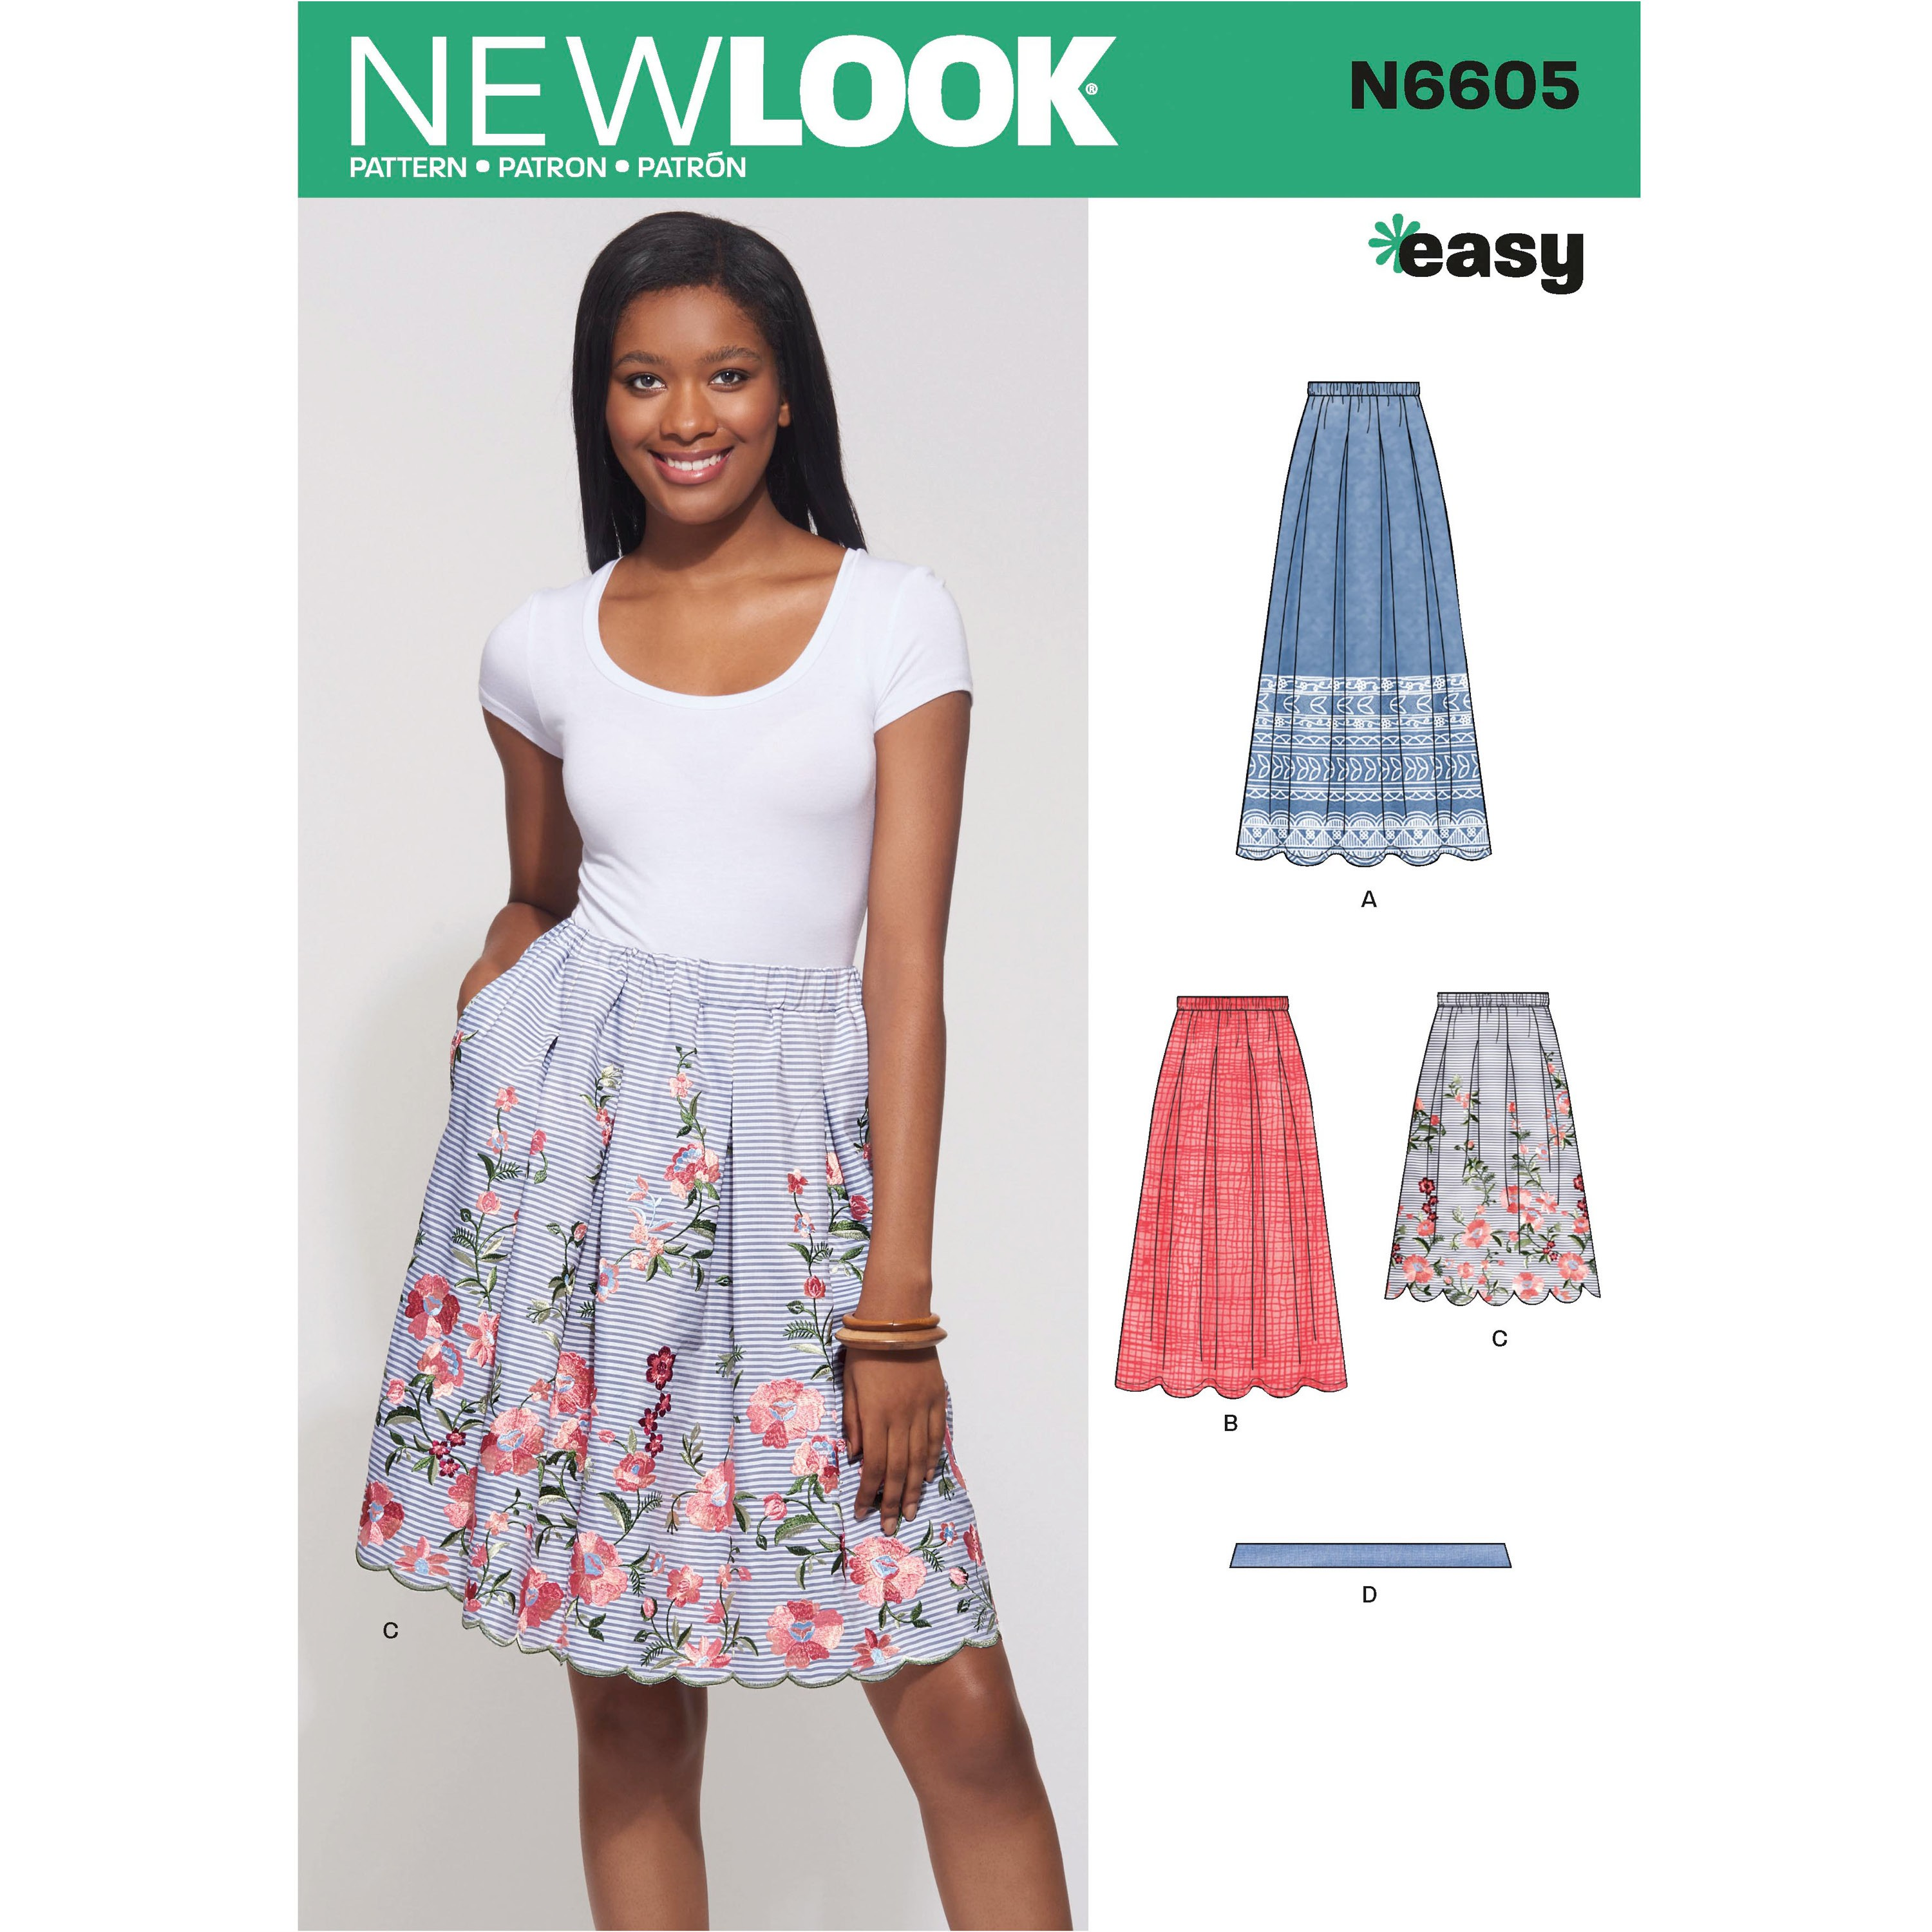 New Look Women's Soft Pleated Loose-Fitting Skirt with Elastic Wasteband 6605